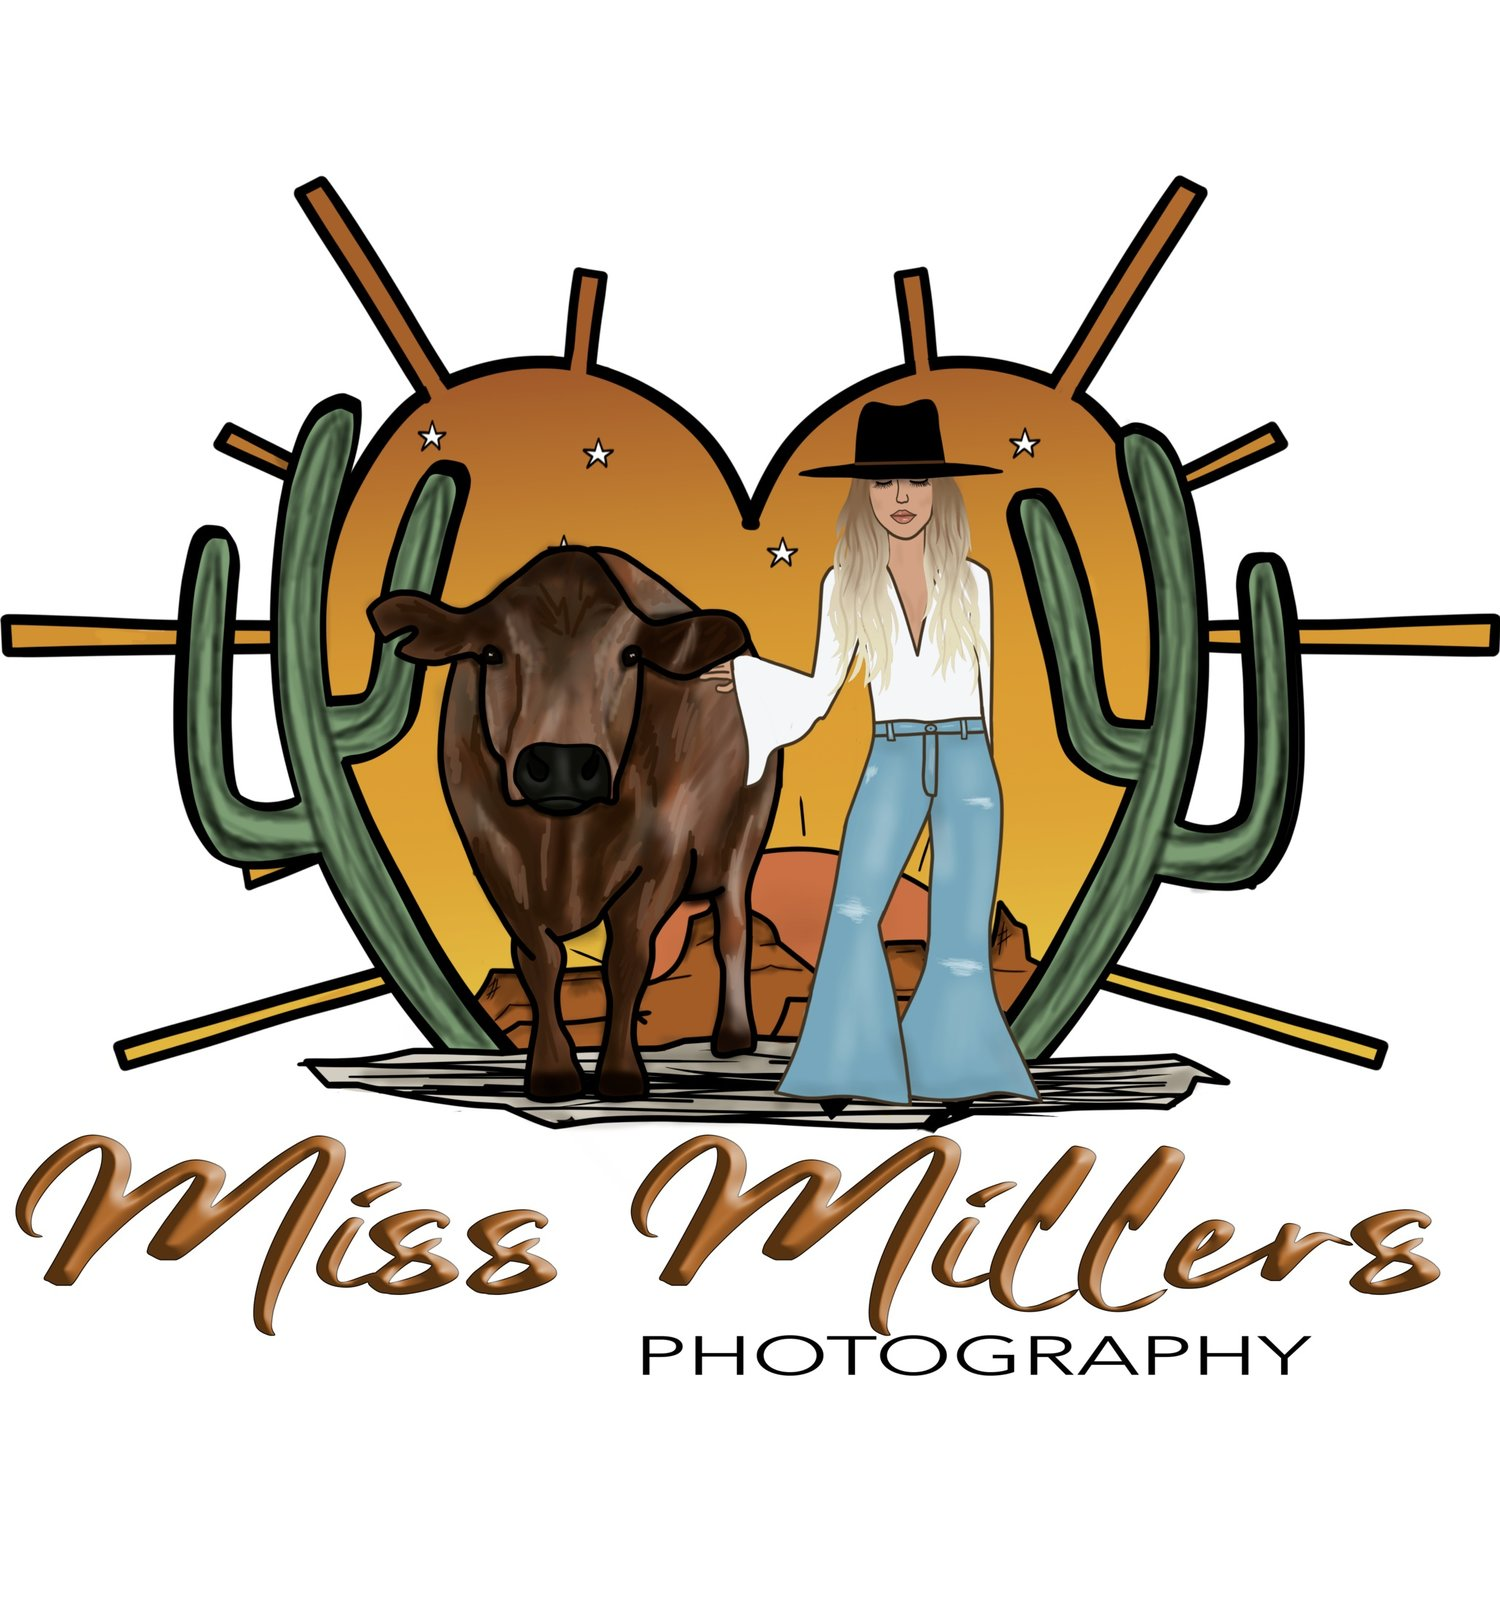 Miss. Miller's Photography